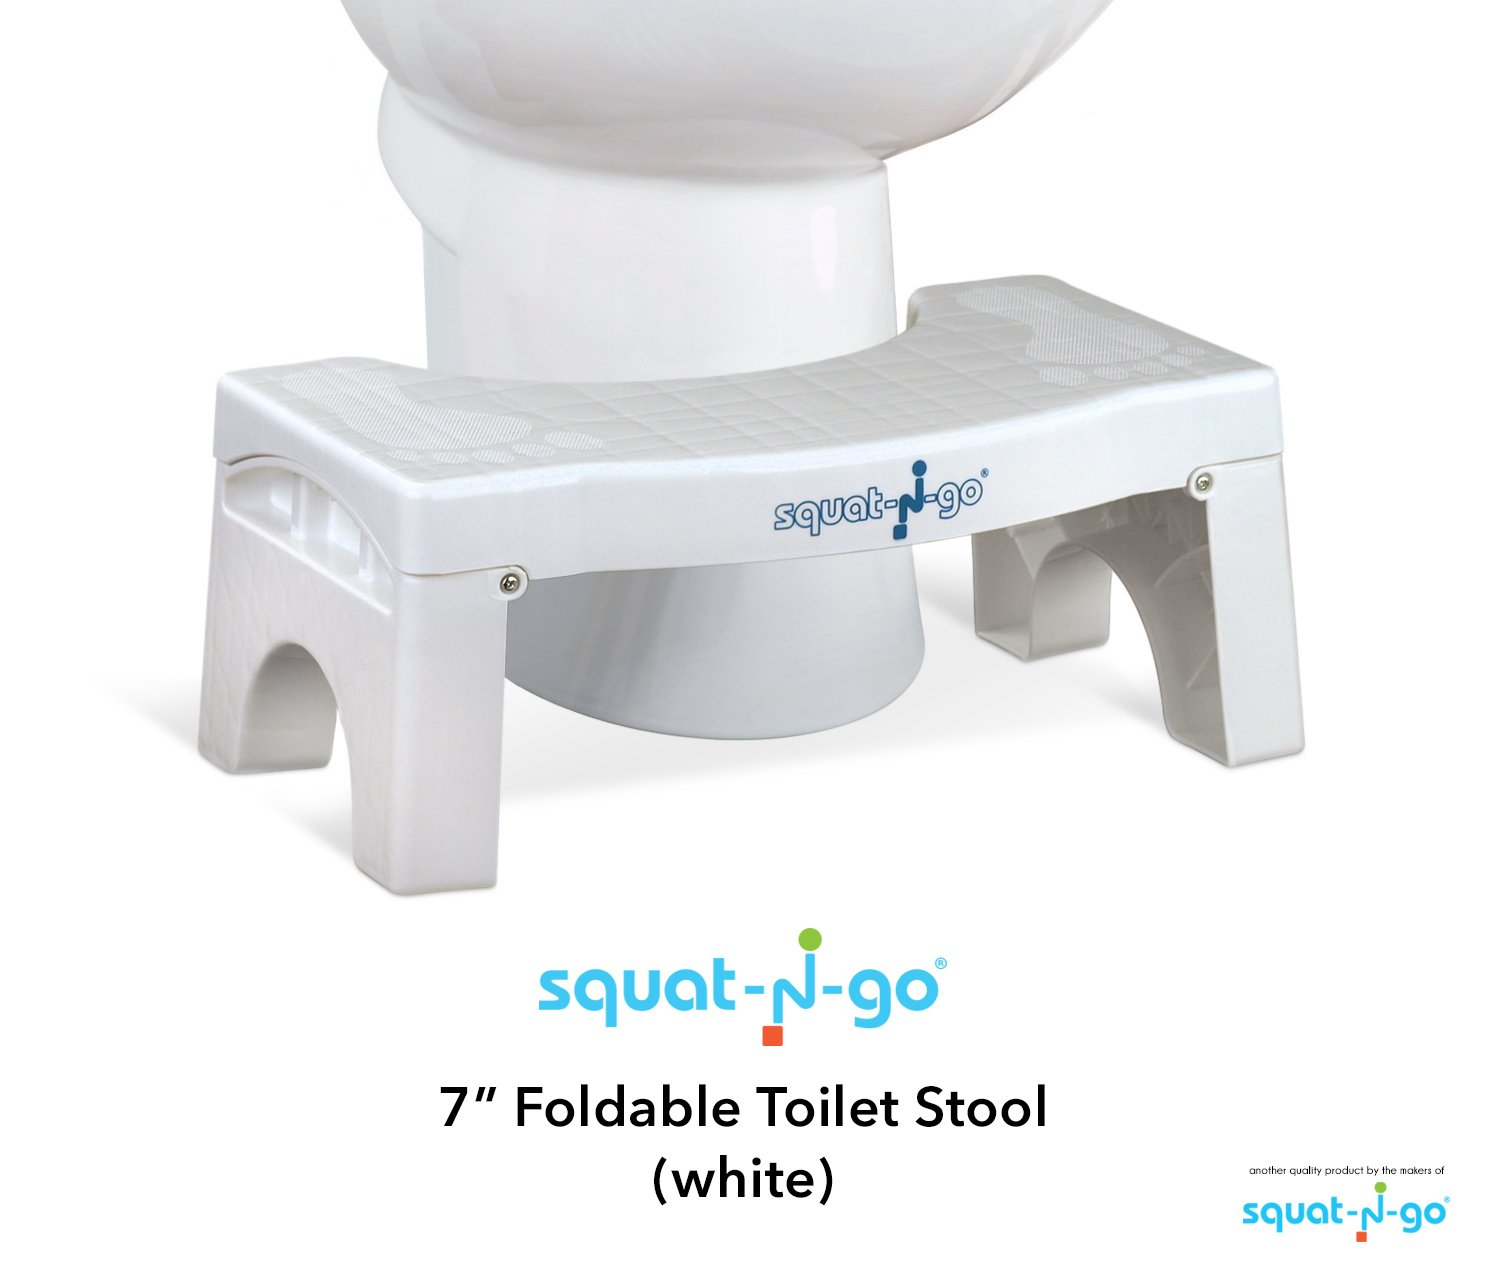 Terrific Squat N Go 7 Folding Squatting Stool The Only Foldable Toilet Stool Convenient And Compact Great For Travel Fits All Toilets Folds For Easy Machost Co Dining Chair Design Ideas Machostcouk